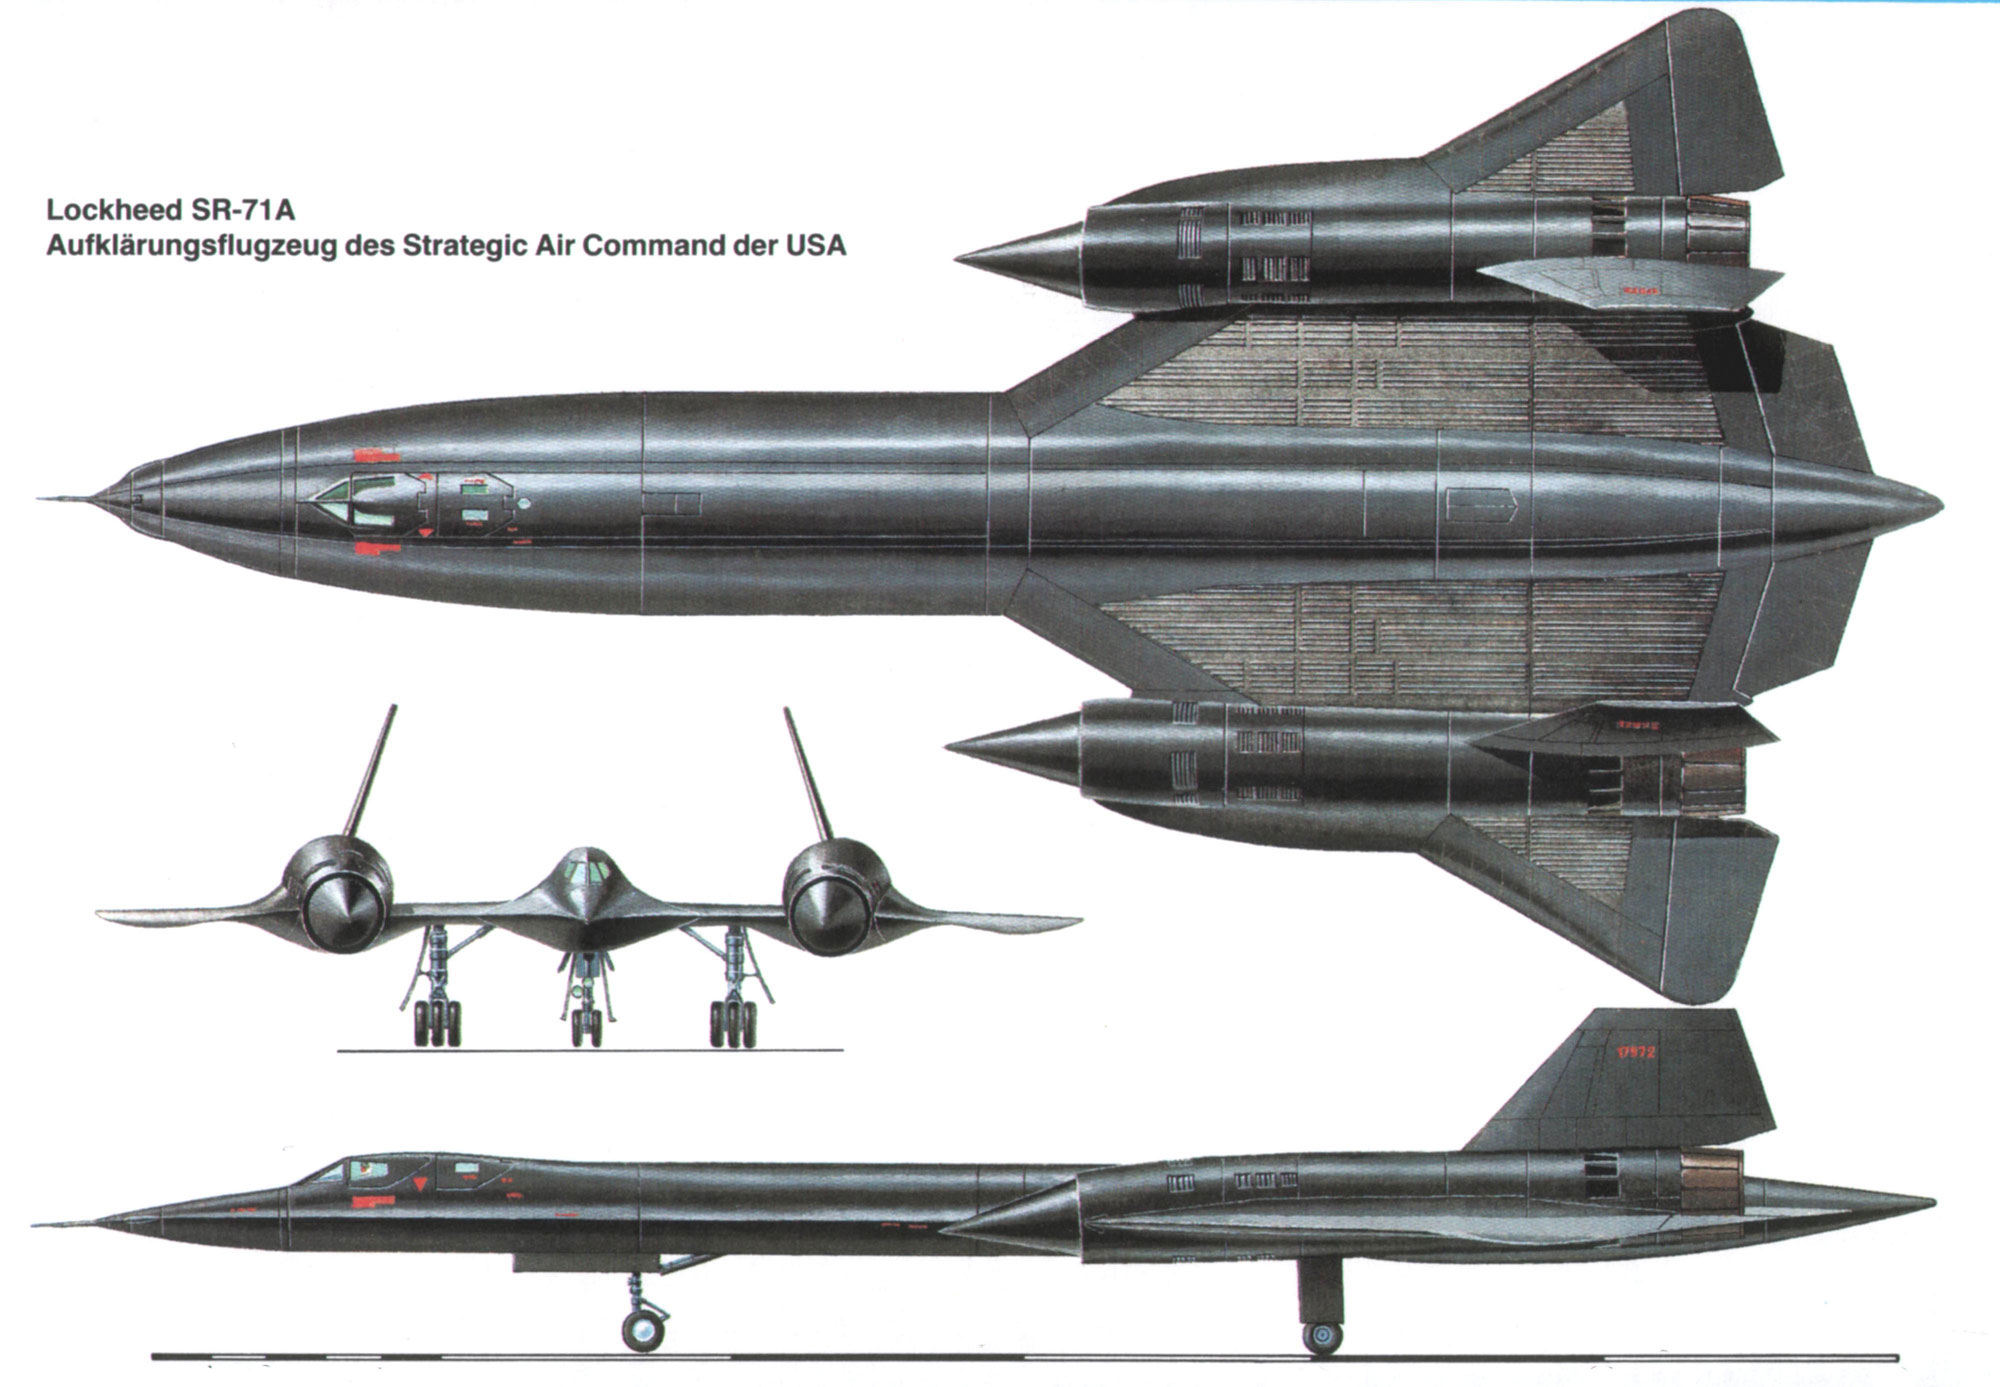 SR-71-Blackbird-USA-Design